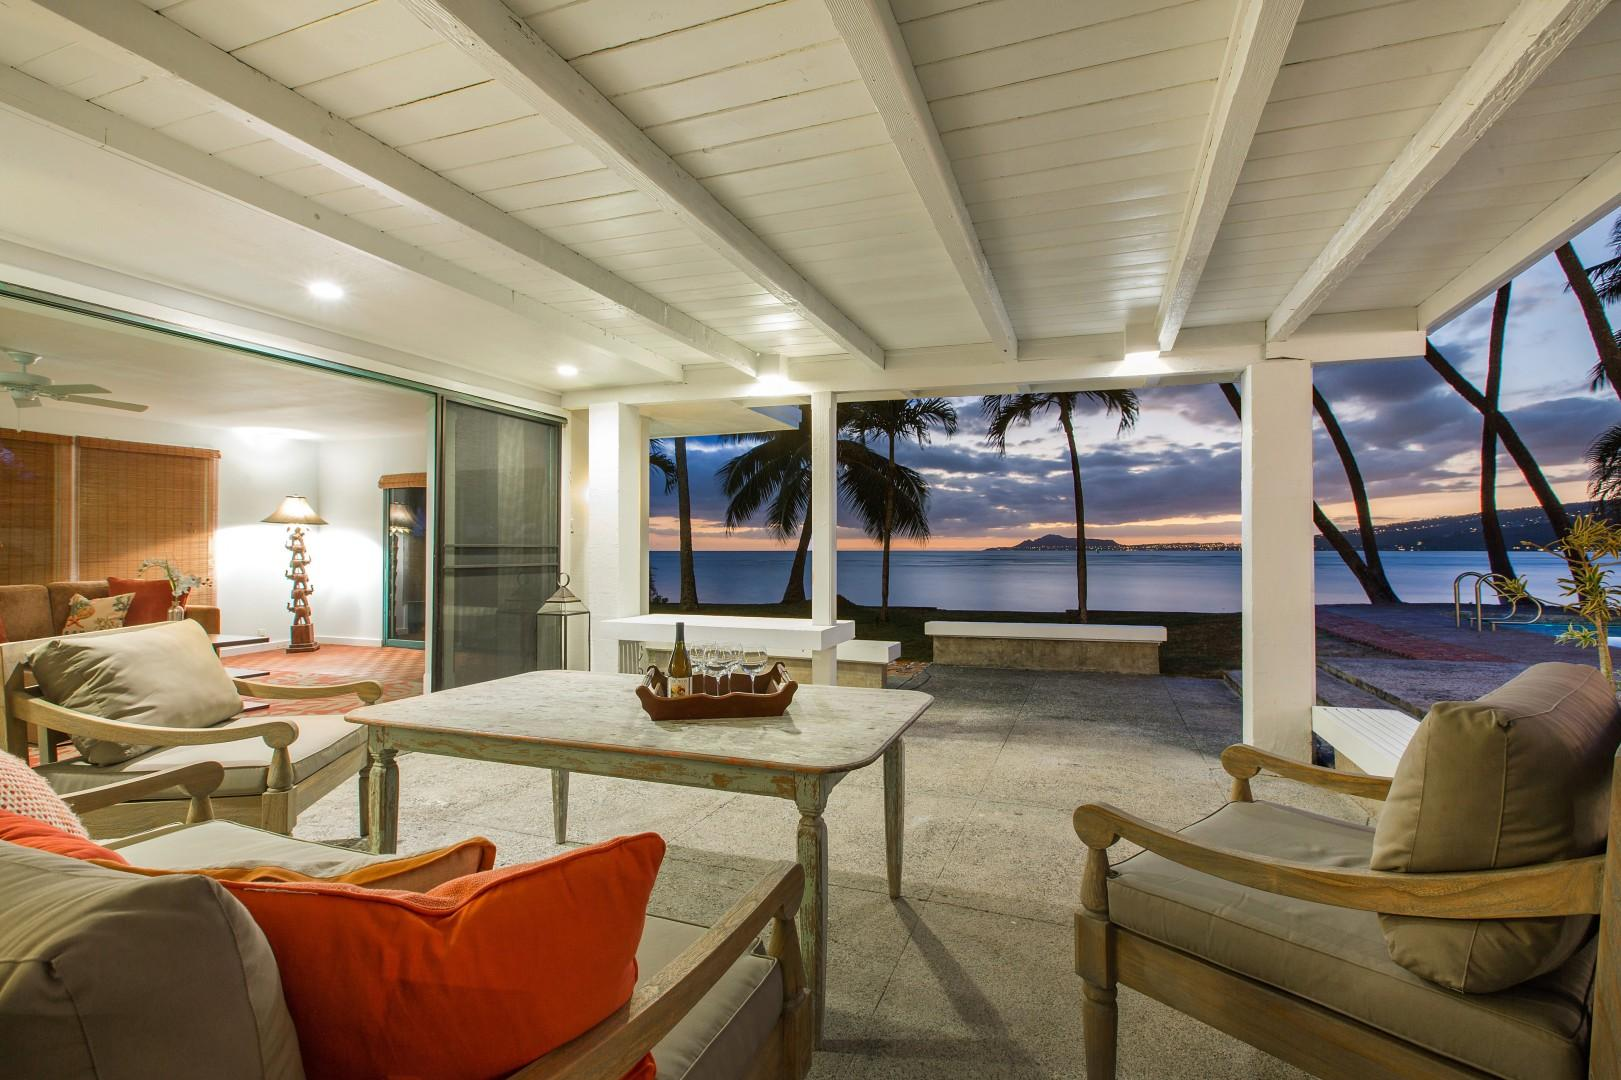 Take in the sunset views from the covered lanai!